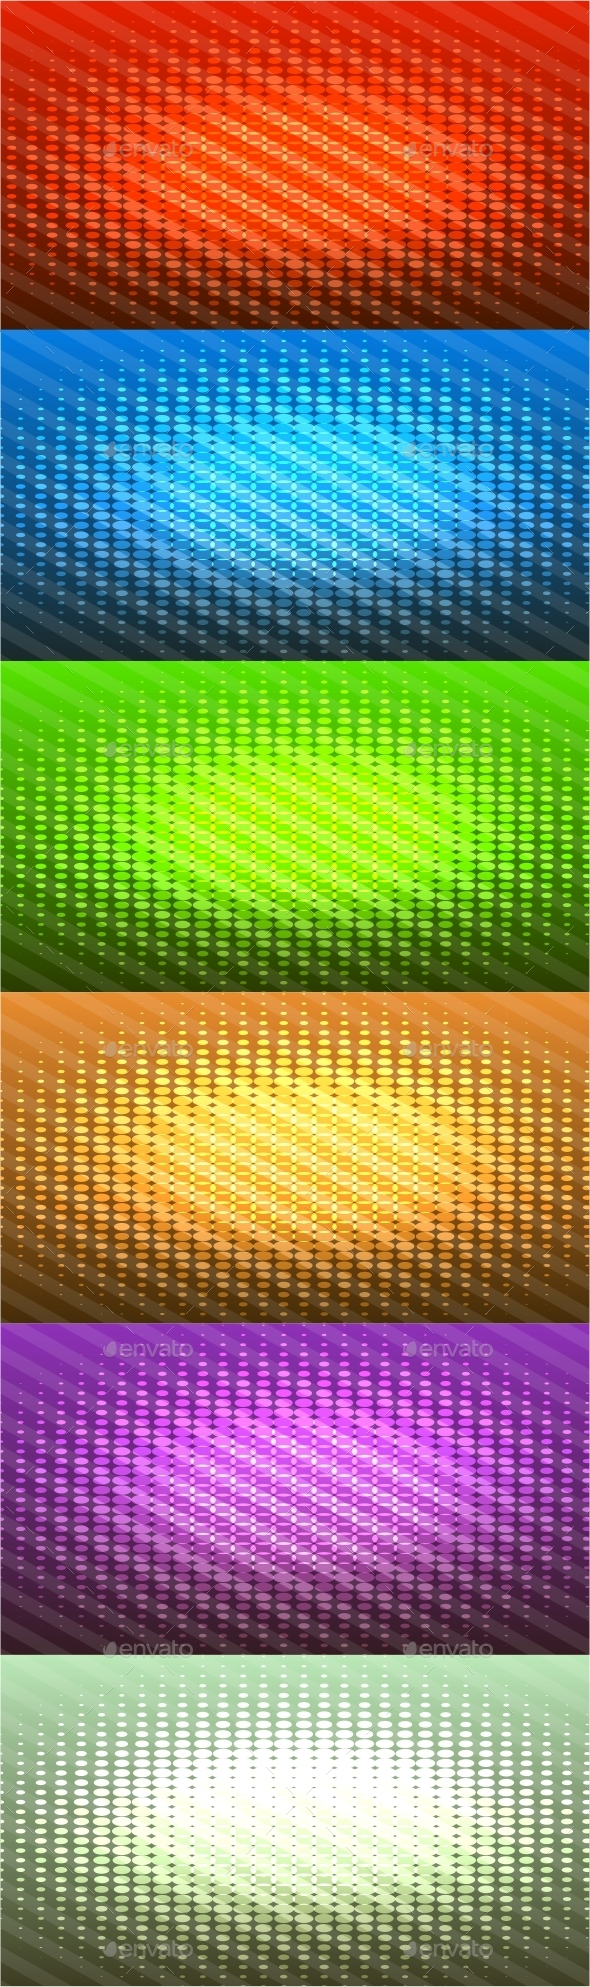 Abstraction Background - Abstract Backgrounds